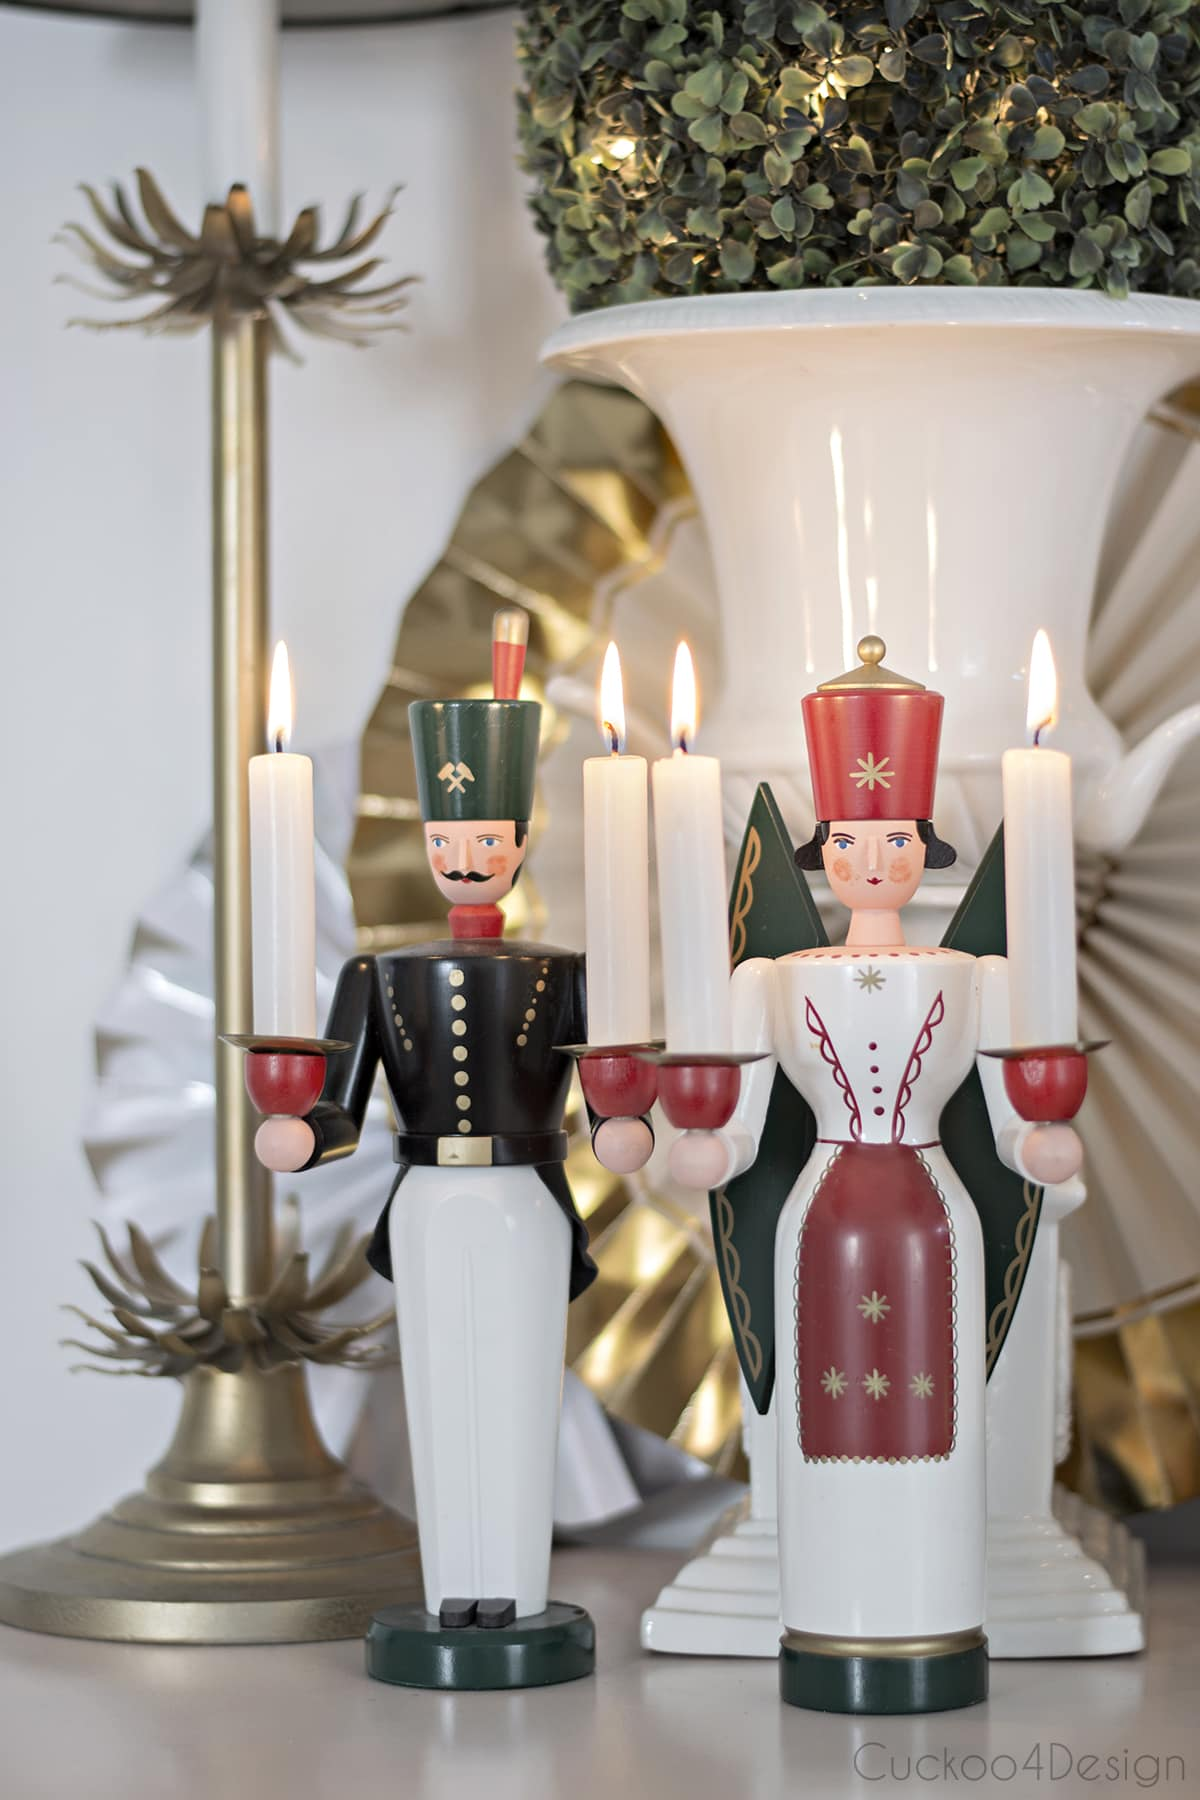 German Erzgebirge soldier/worker and angel with candles